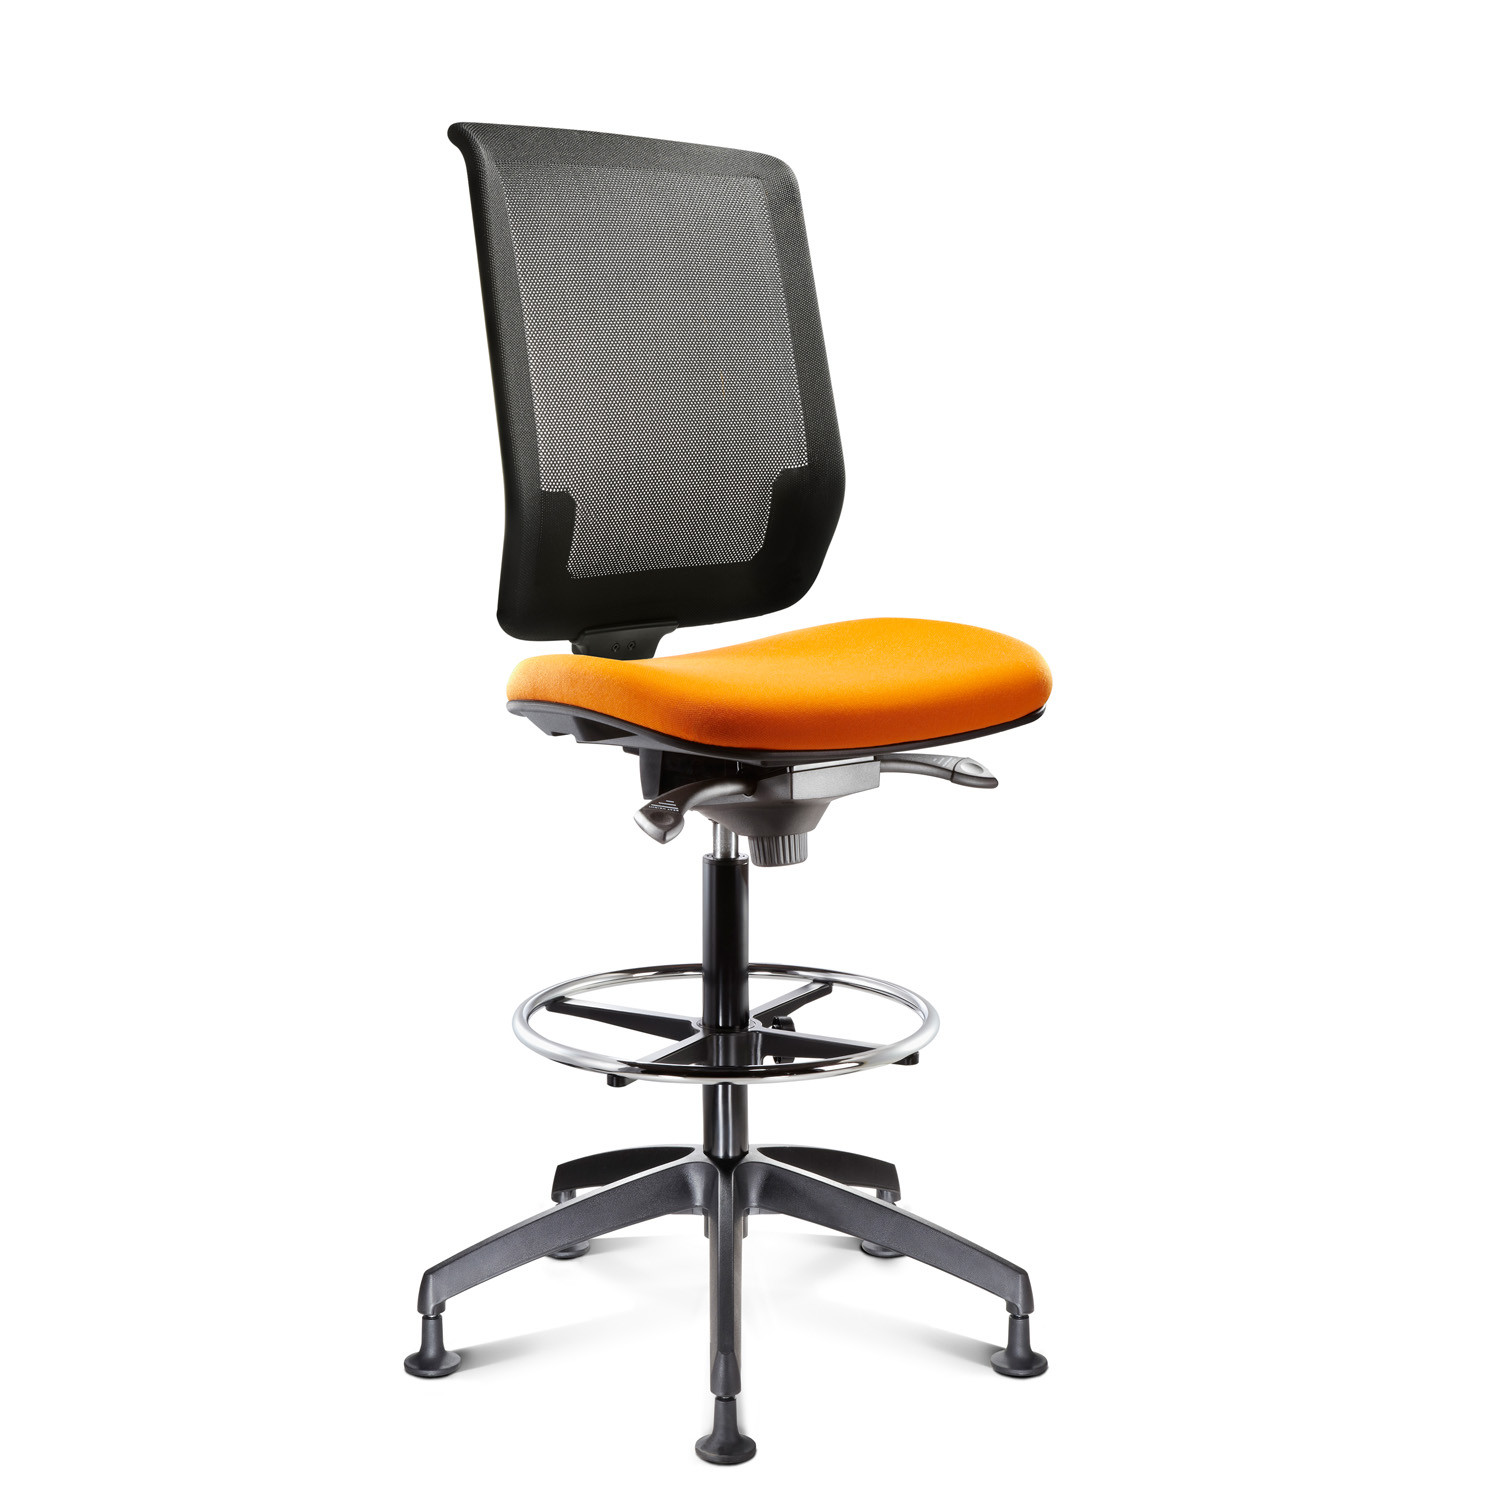 My Mesh Draughtsman Chair O2MYEE2